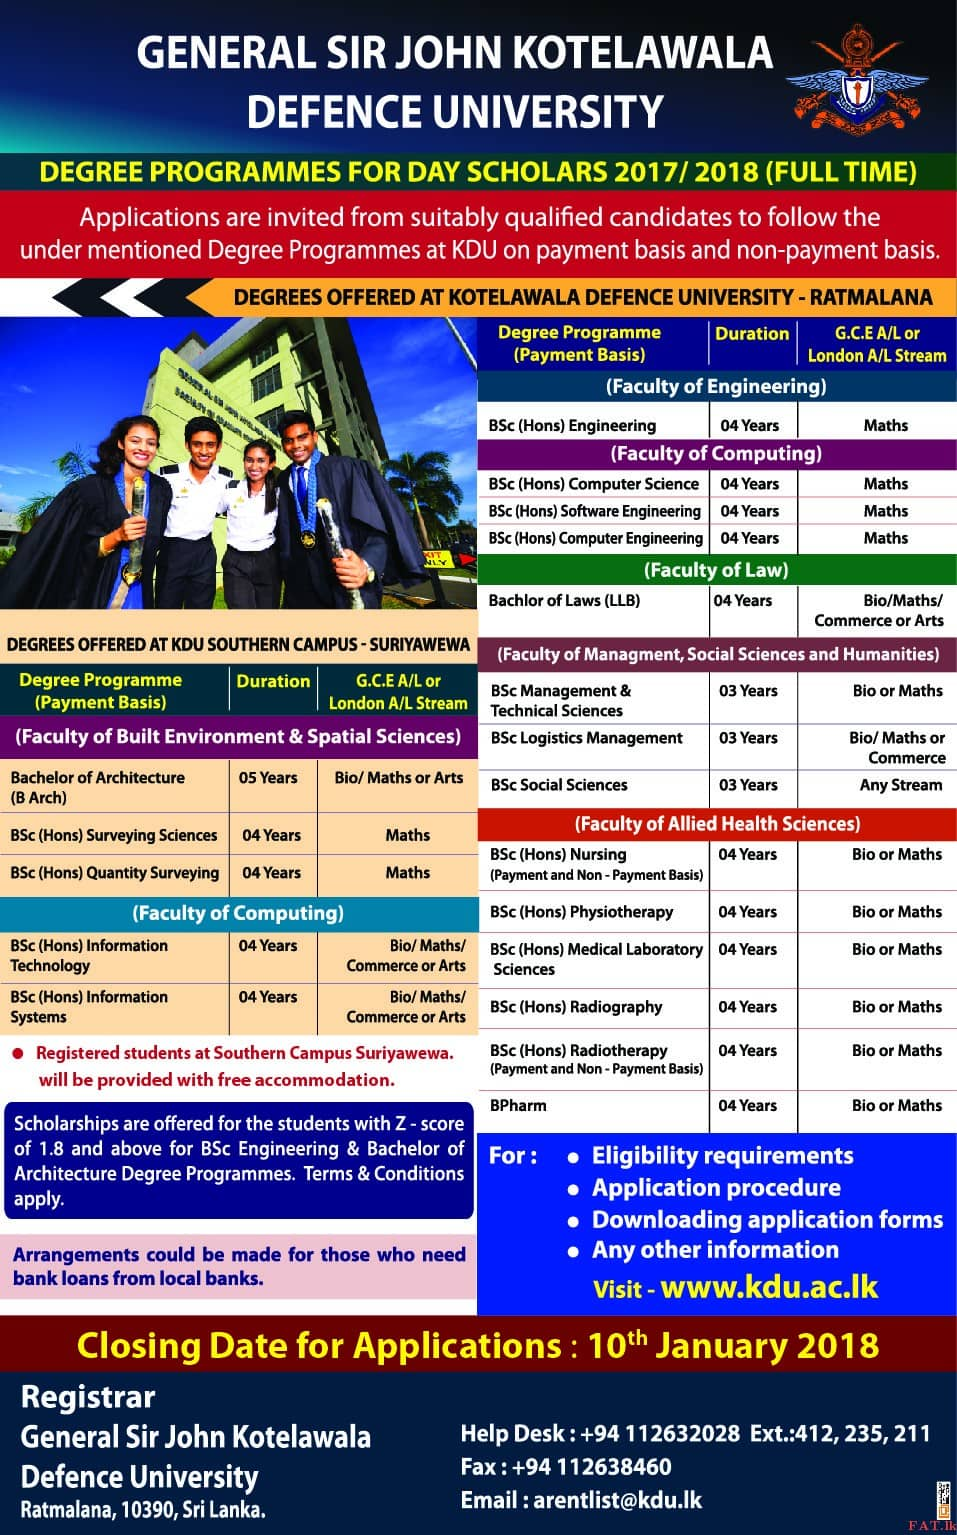 Degree programms offered by KDU - General Sir John Kotelawala Defence University